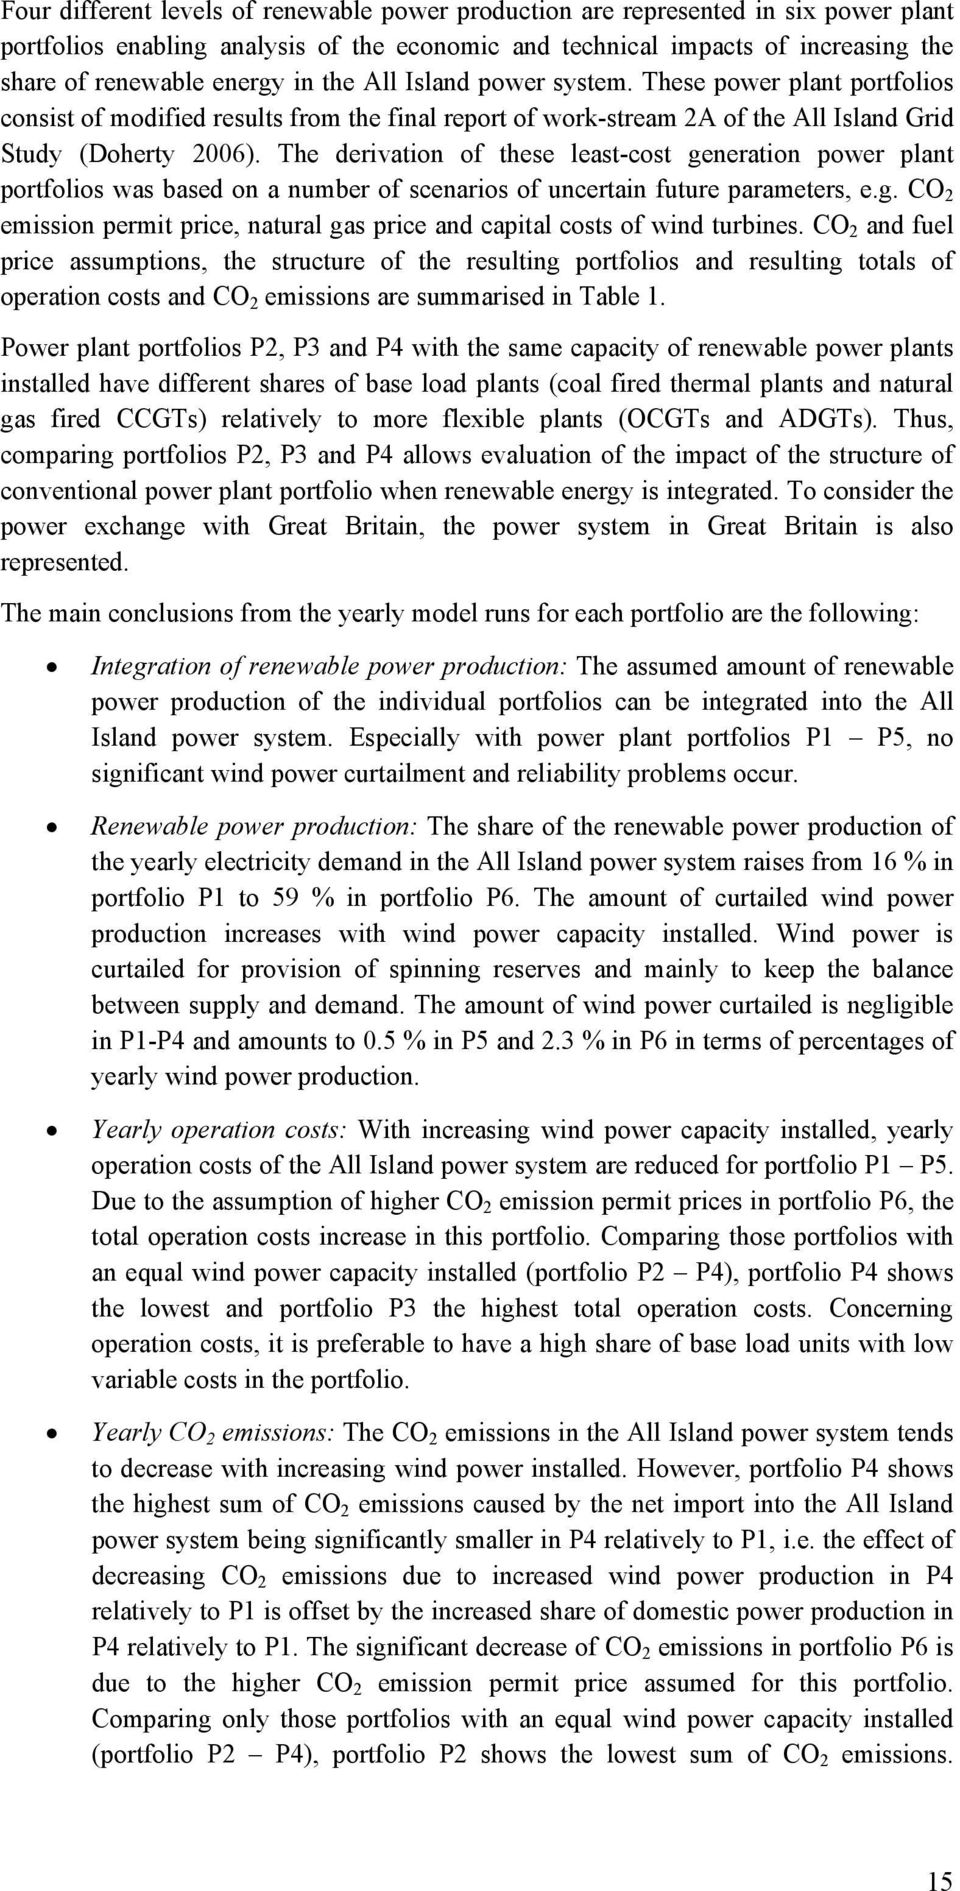 The derivation of these least-cost generation power plant portfolios was based on a number of scenarios of uncertain future parameters, e.g. CO 2 emission permit price, natural gas price and capital costs of wind turbines.